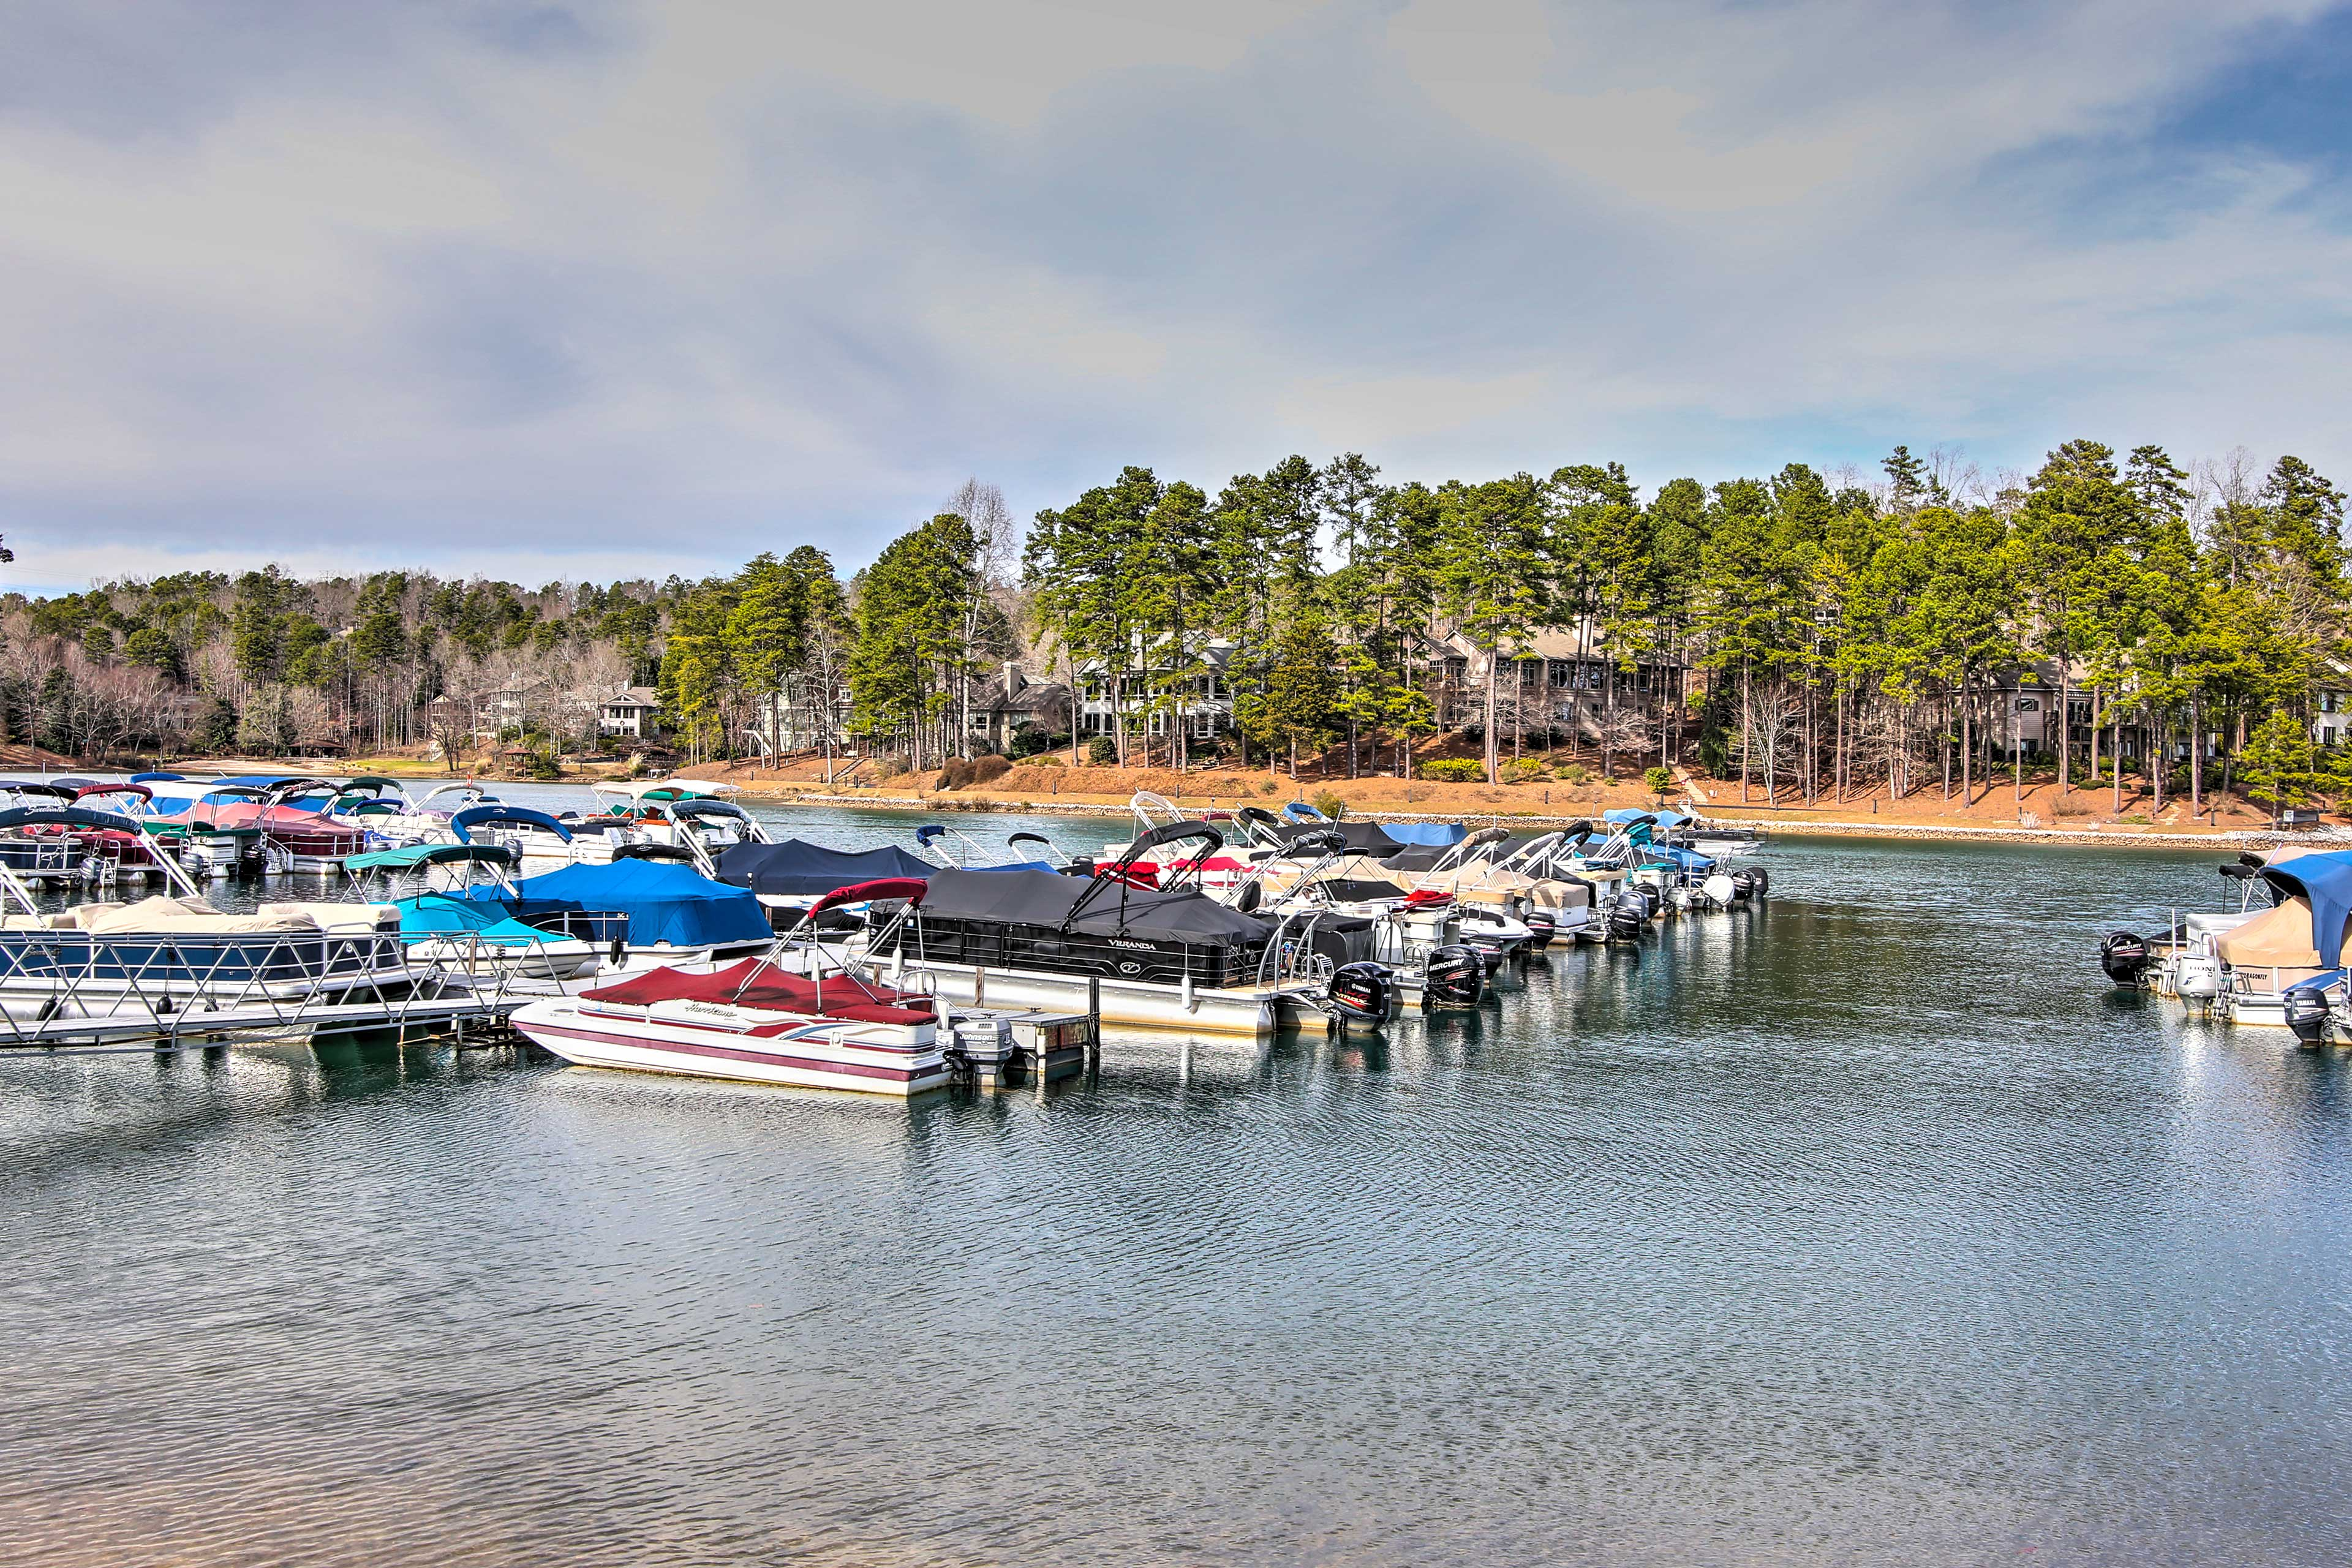 Dock your boat at one of the available rentals!